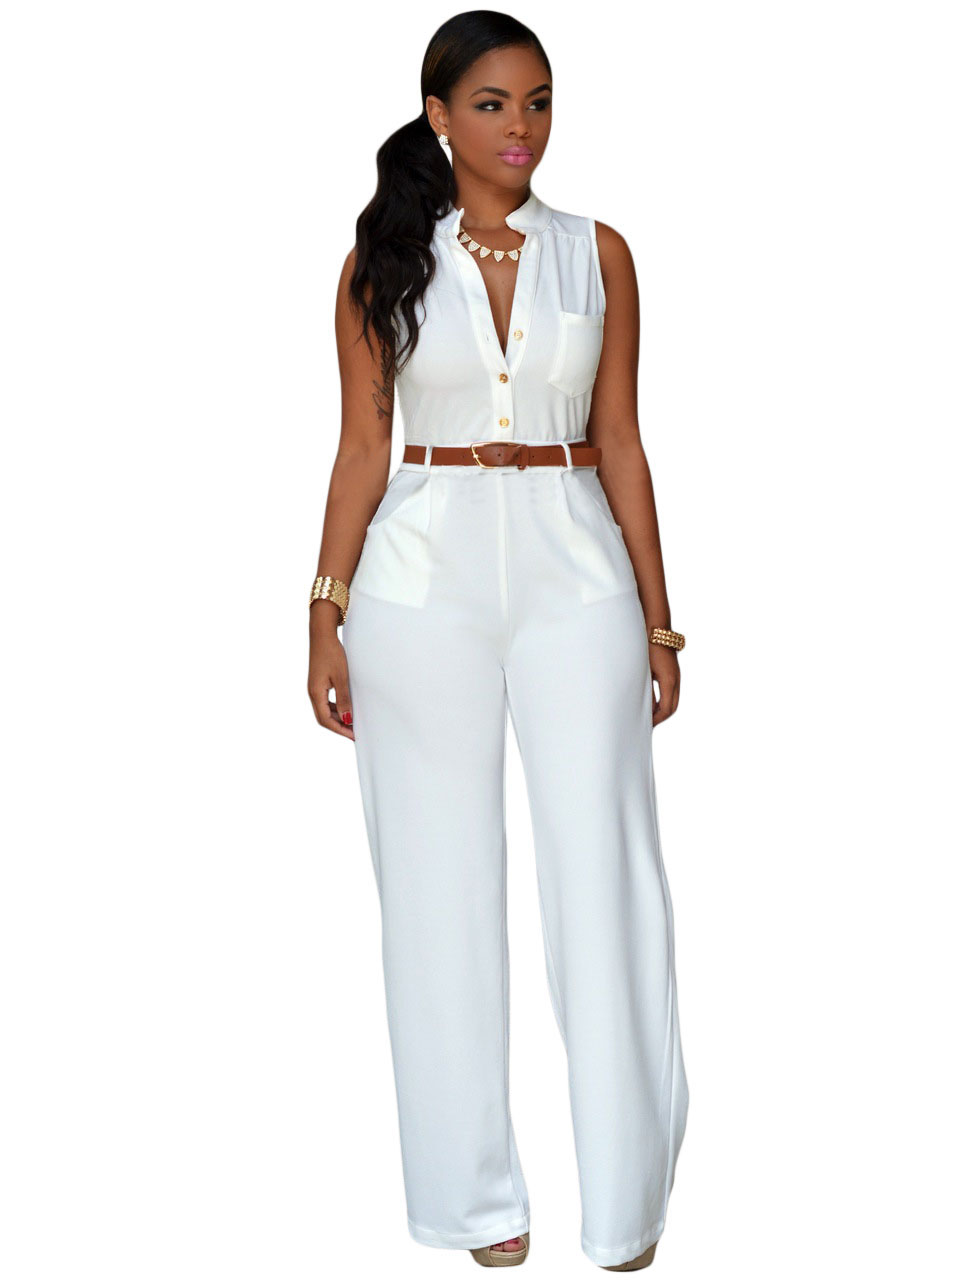 ac9ebb6b6bca 2016 New Summer Women s Sleeveless Light Blue Black Yellow Red White Rosy  Belted Wide Leg Jumpsuit LGY60932 Plus Size-in Jumpsuits from Women s  Clothing   ...